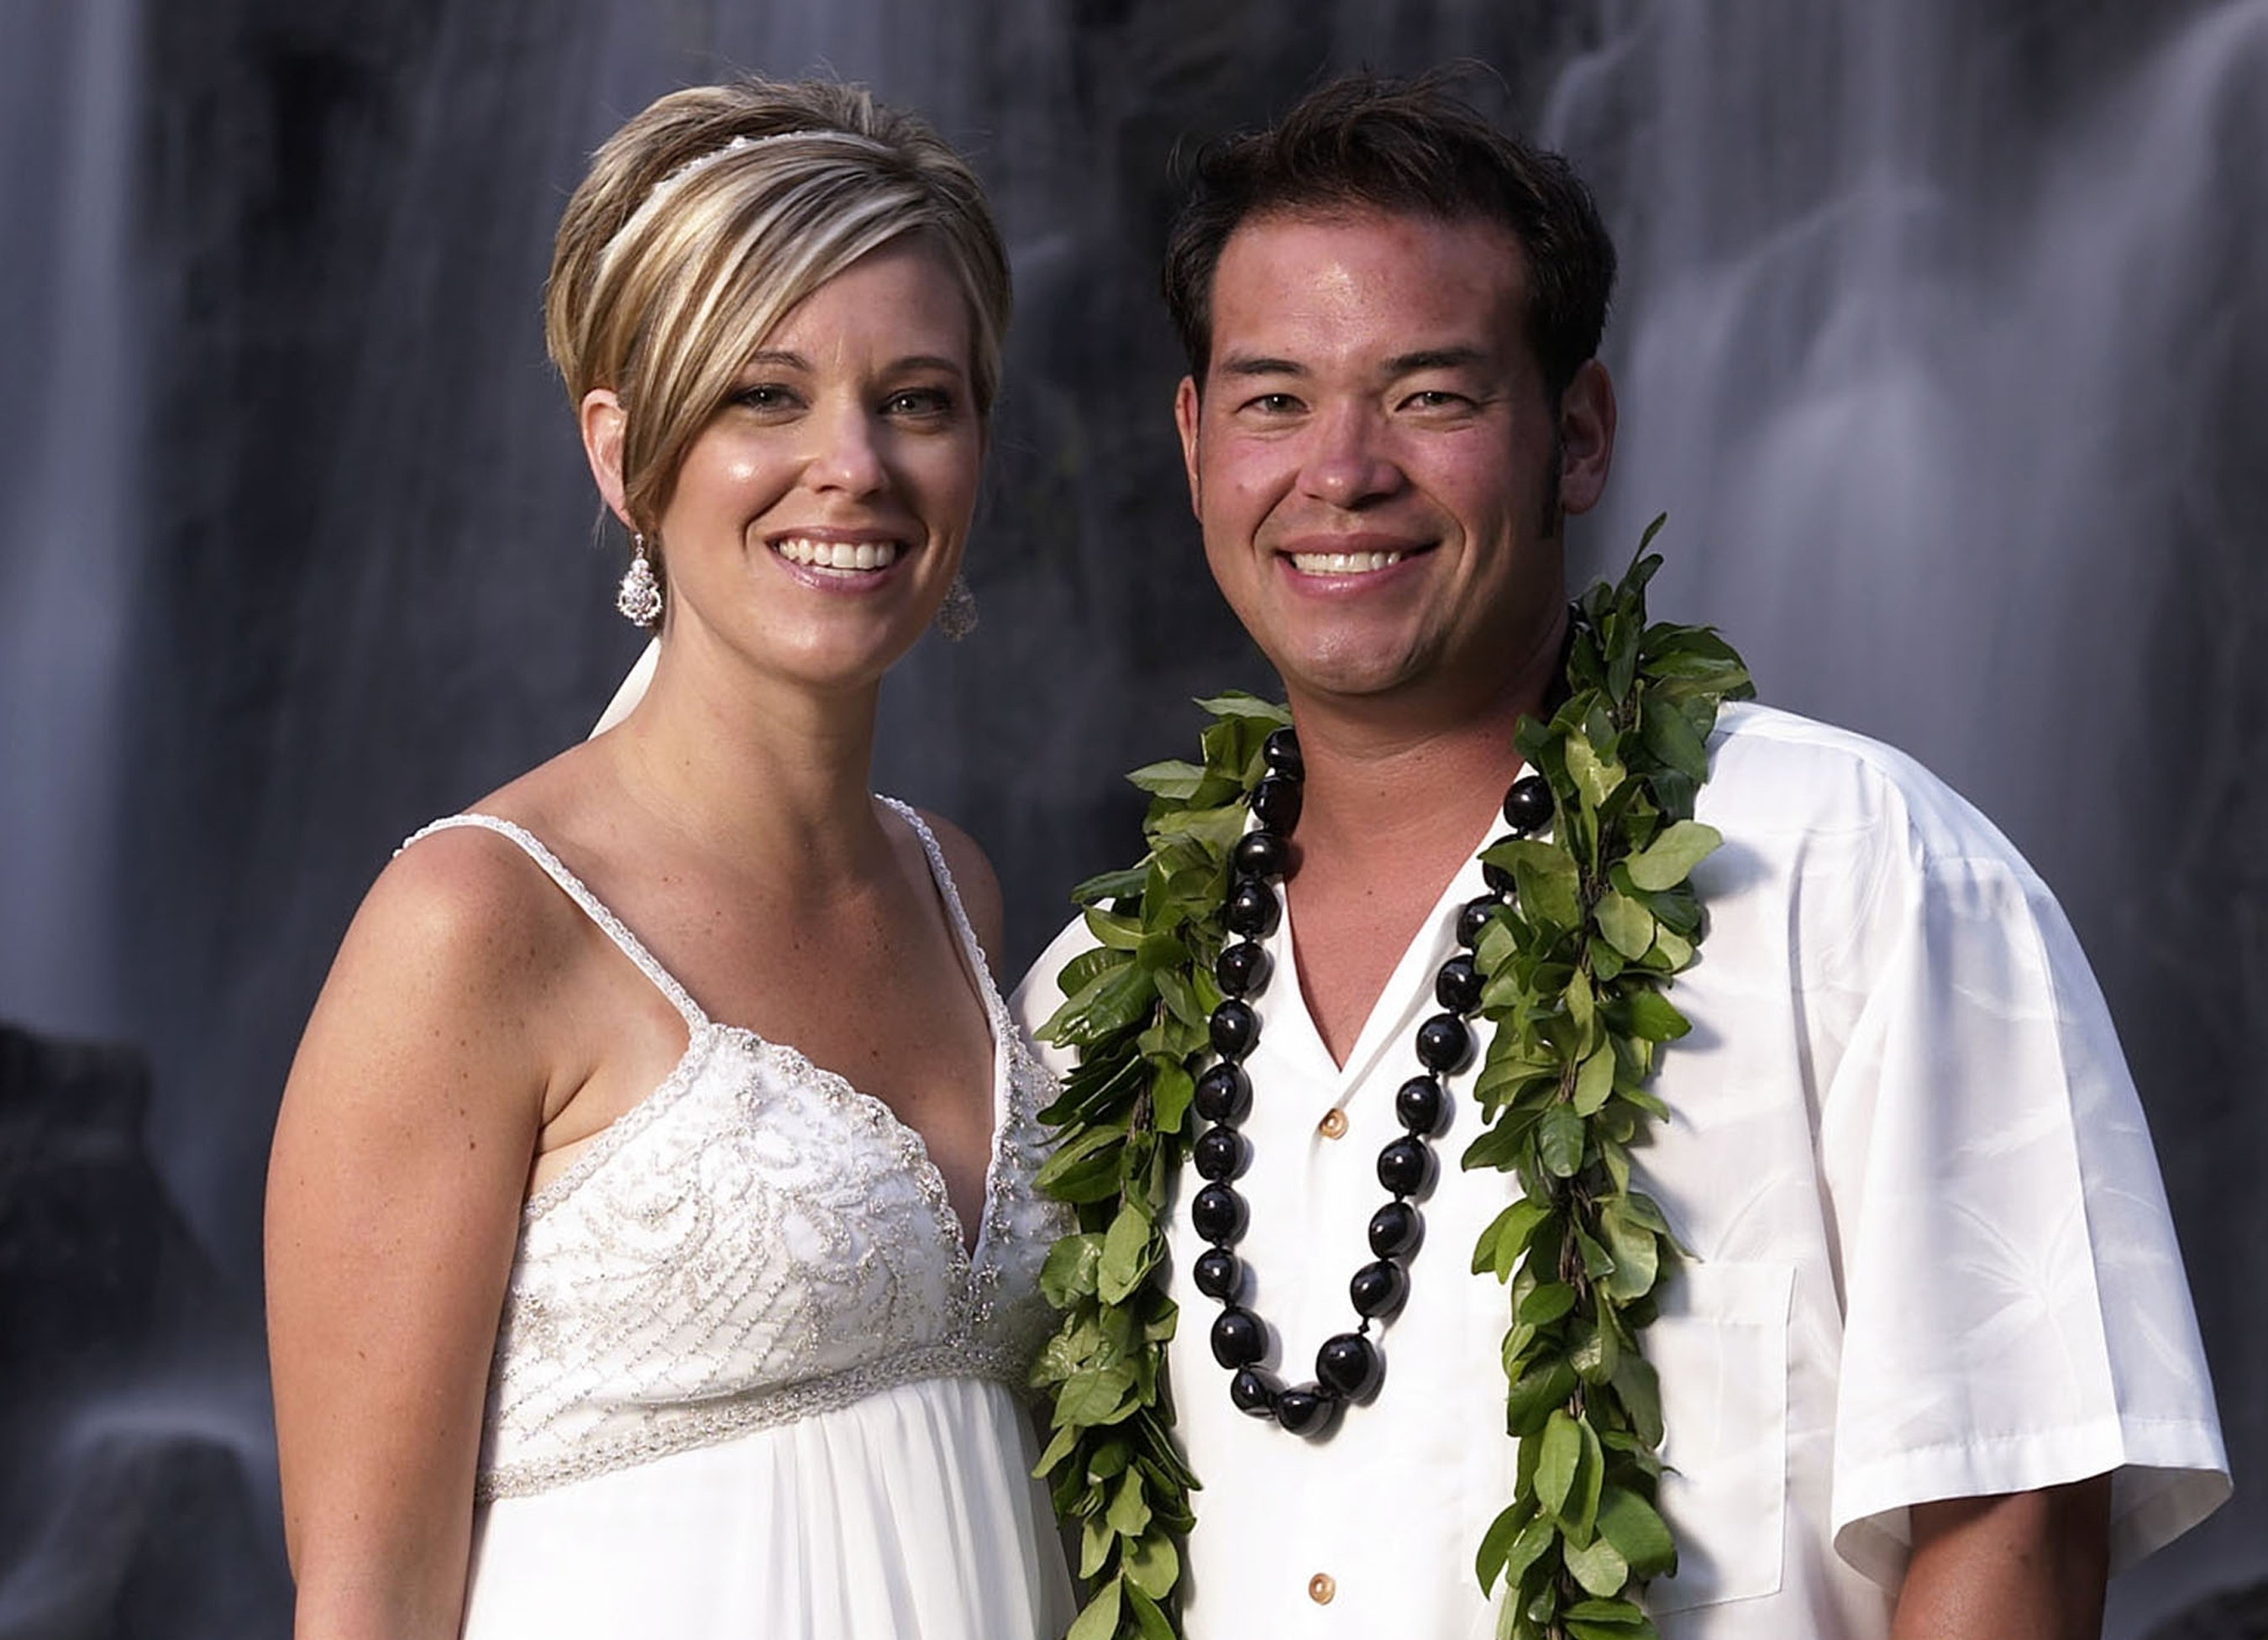 Jon and Kate plus hate?: Former reality TV stars Jon and Kate Gosselin are embroiled in a lawsuit over a tell-all book.